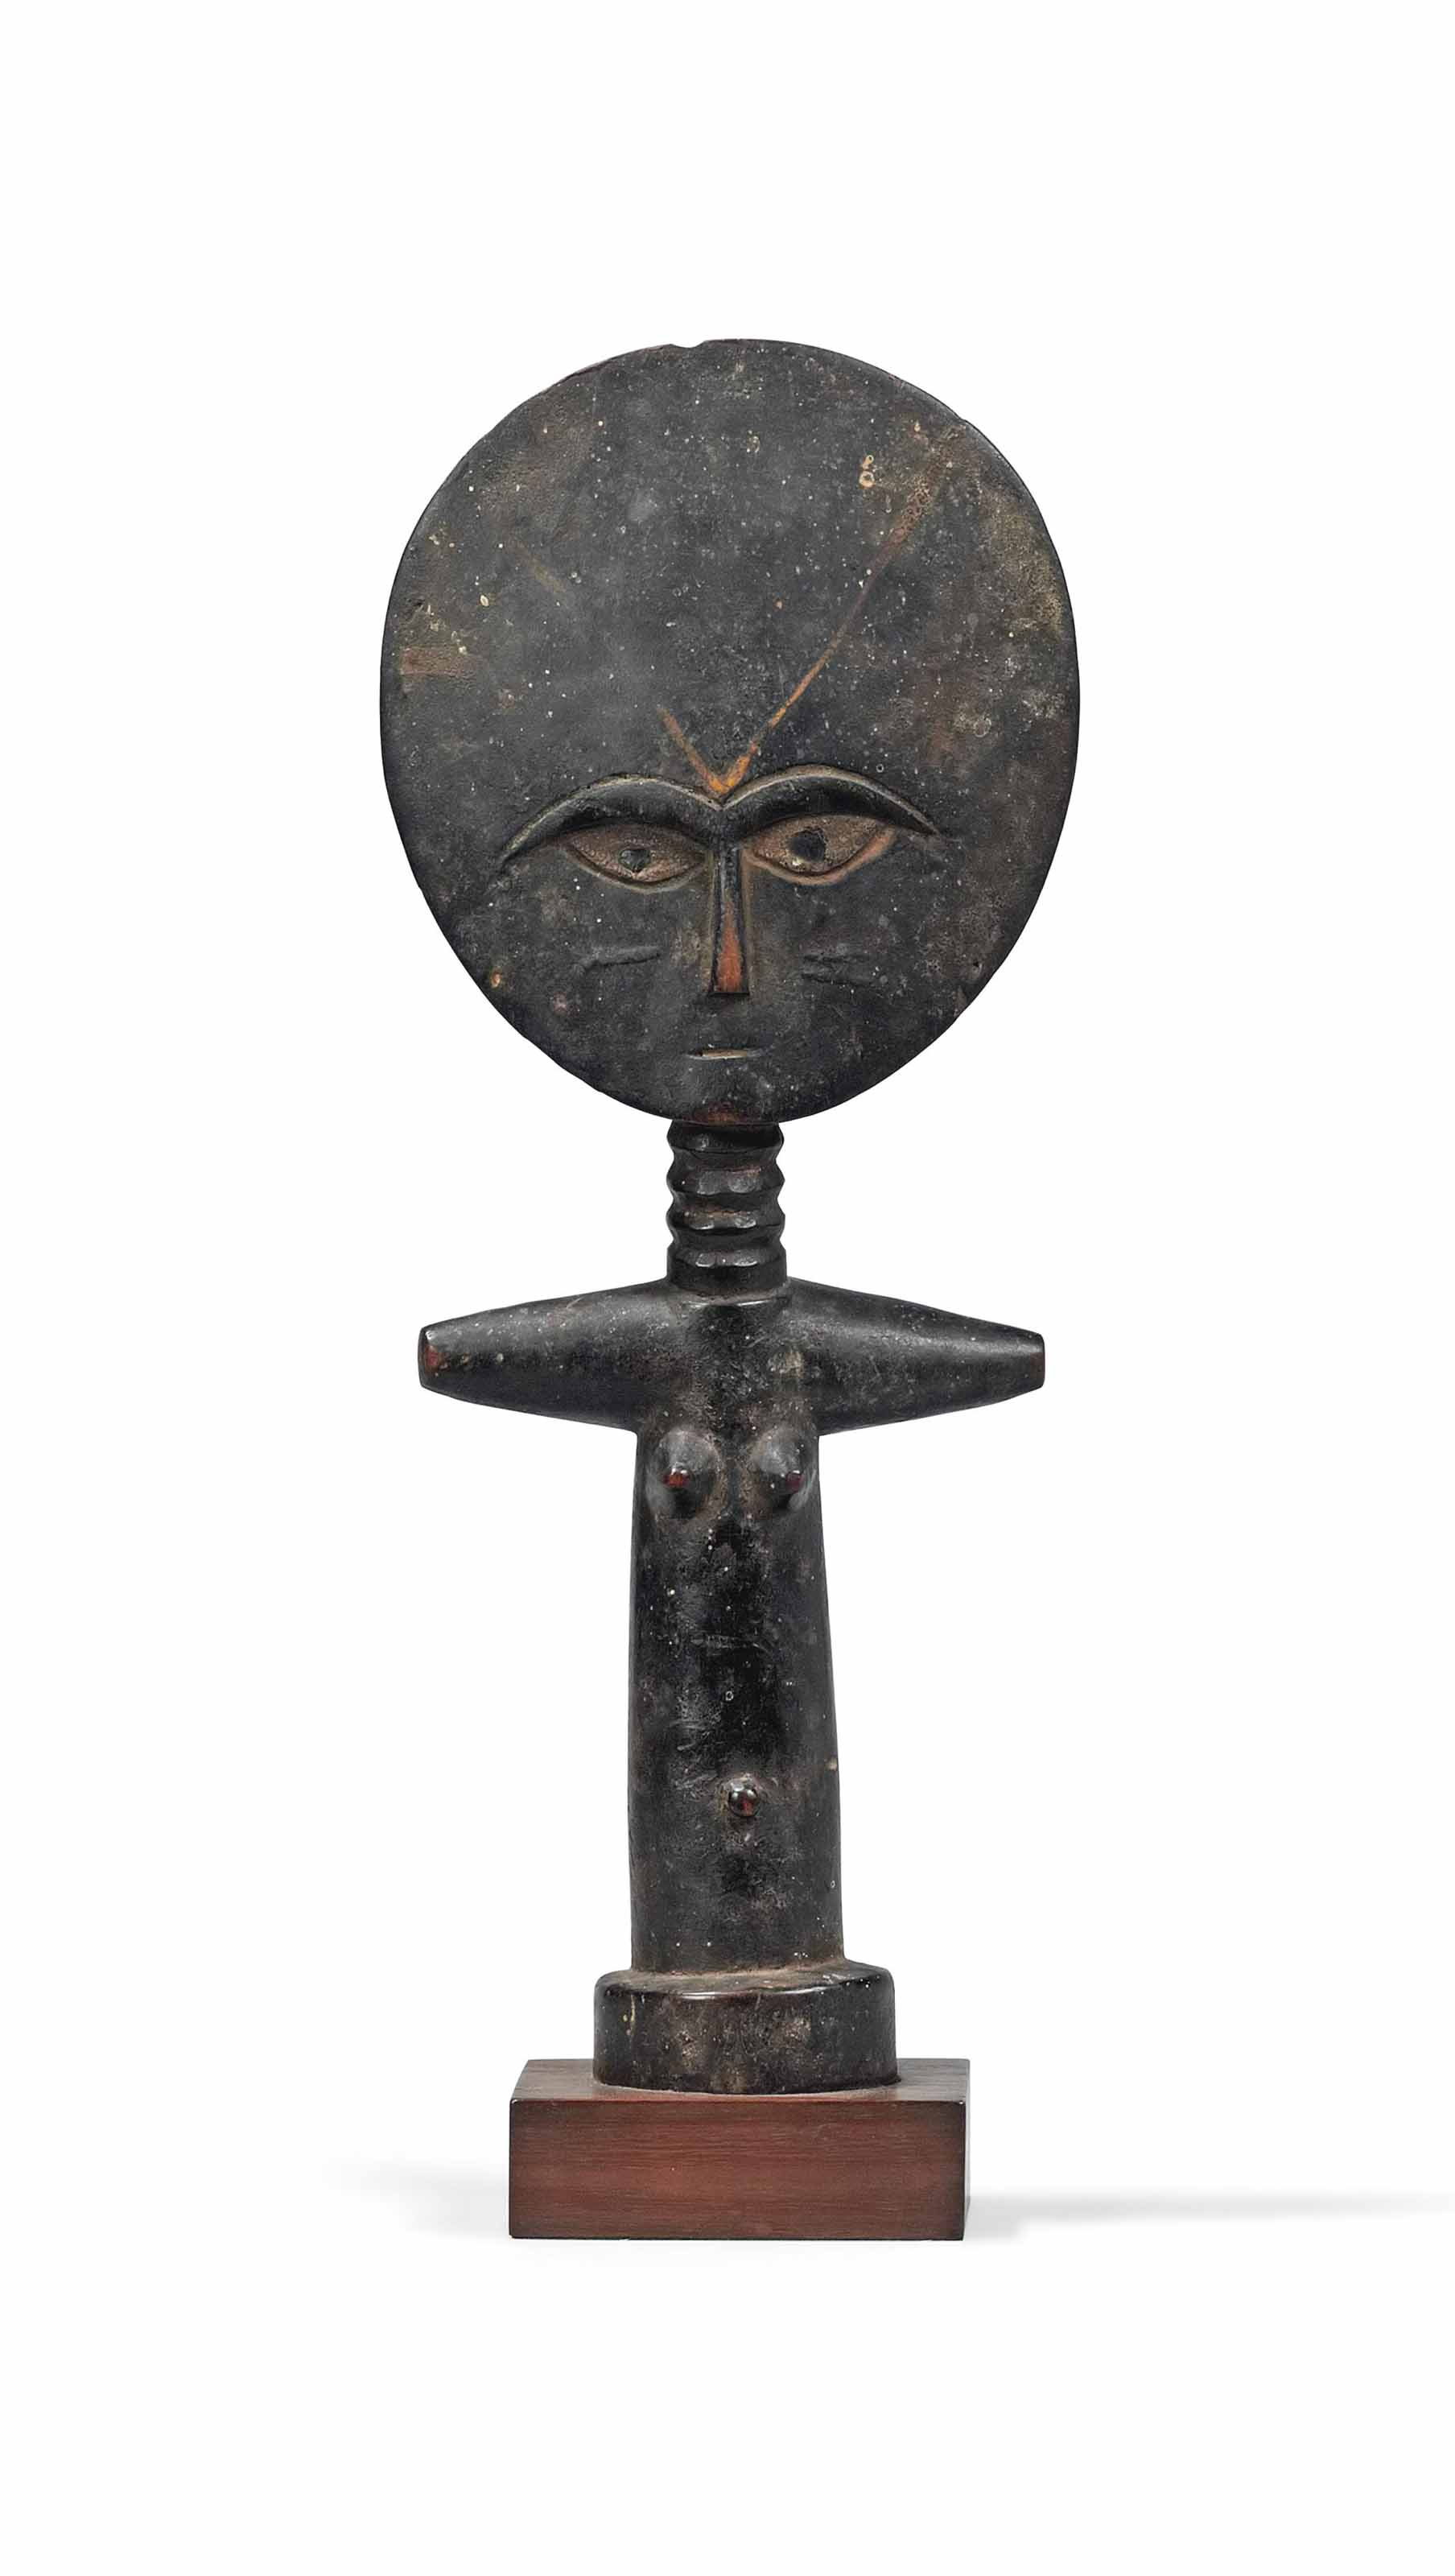 AN ASHANTI WOODEN FIGURE, AKU'